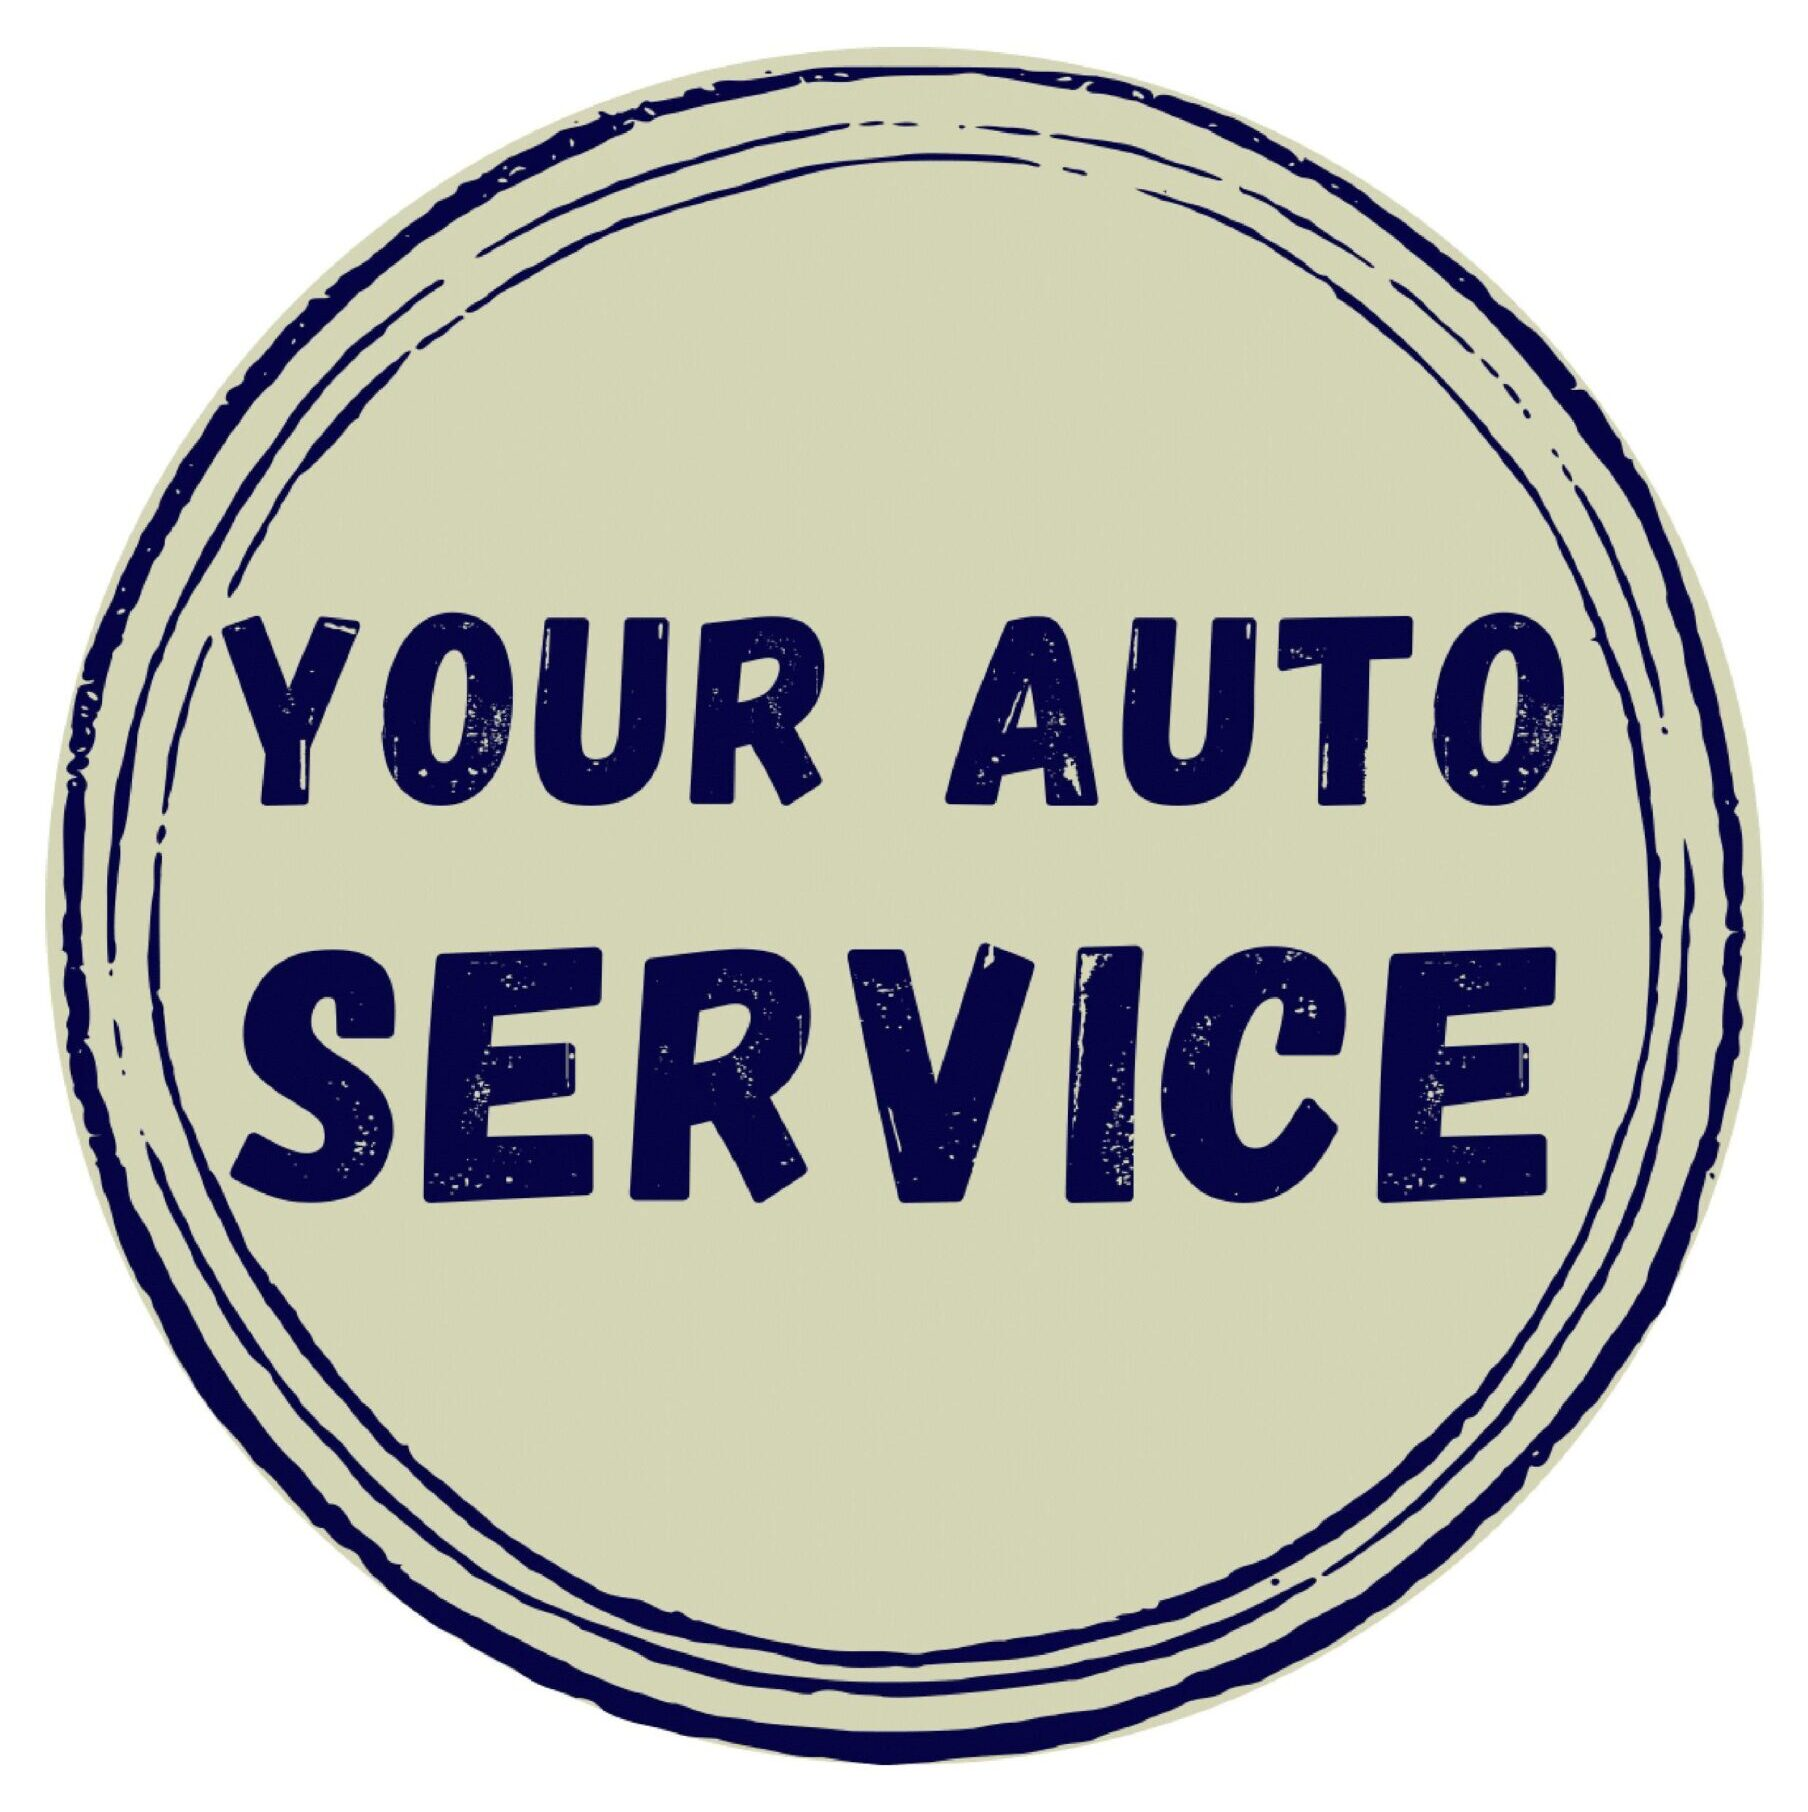 More service, less hassle